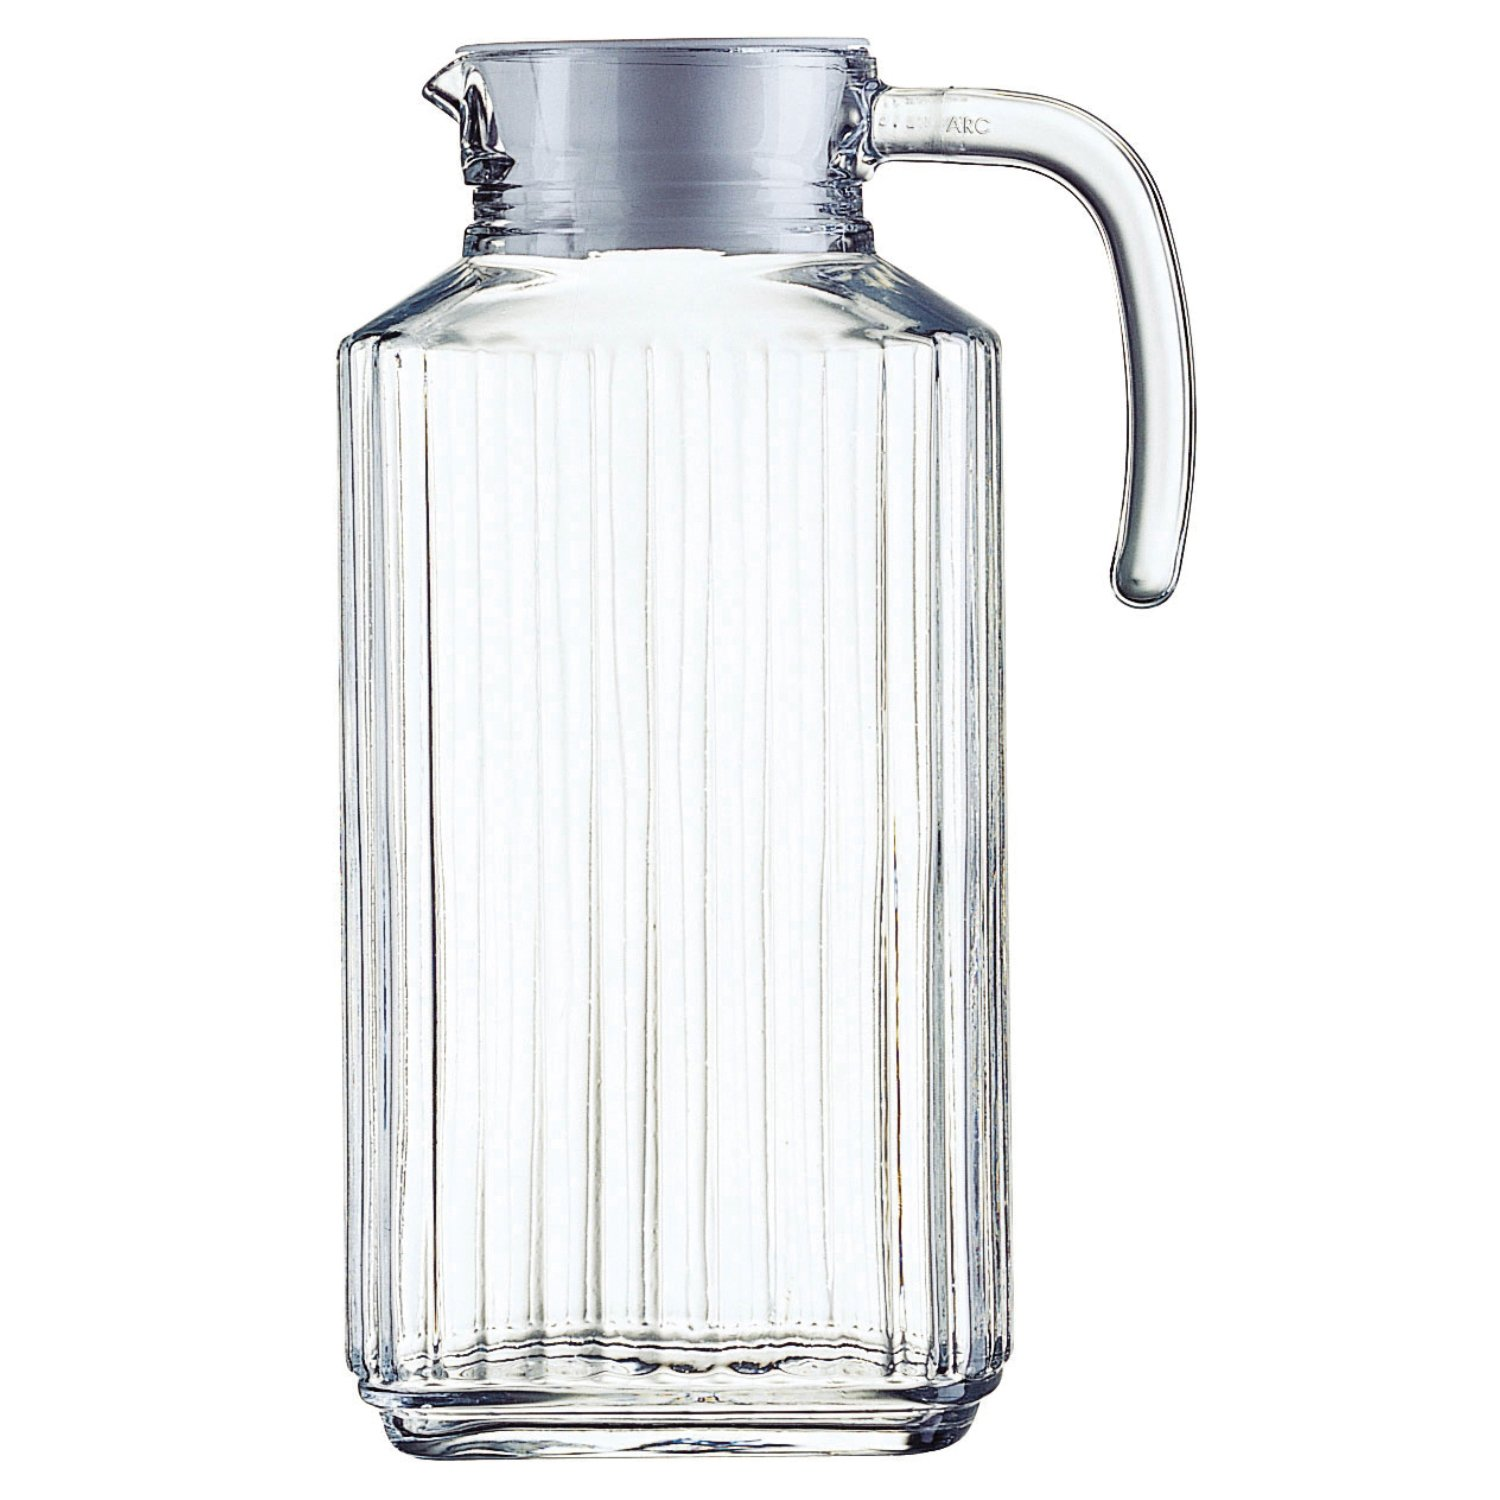 amazoncom  blockhouse quadro glass pitchers  oz quadro  - amazoncom  blockhouse quadro glass pitchers  oz quadro jugscarafes  pitchers